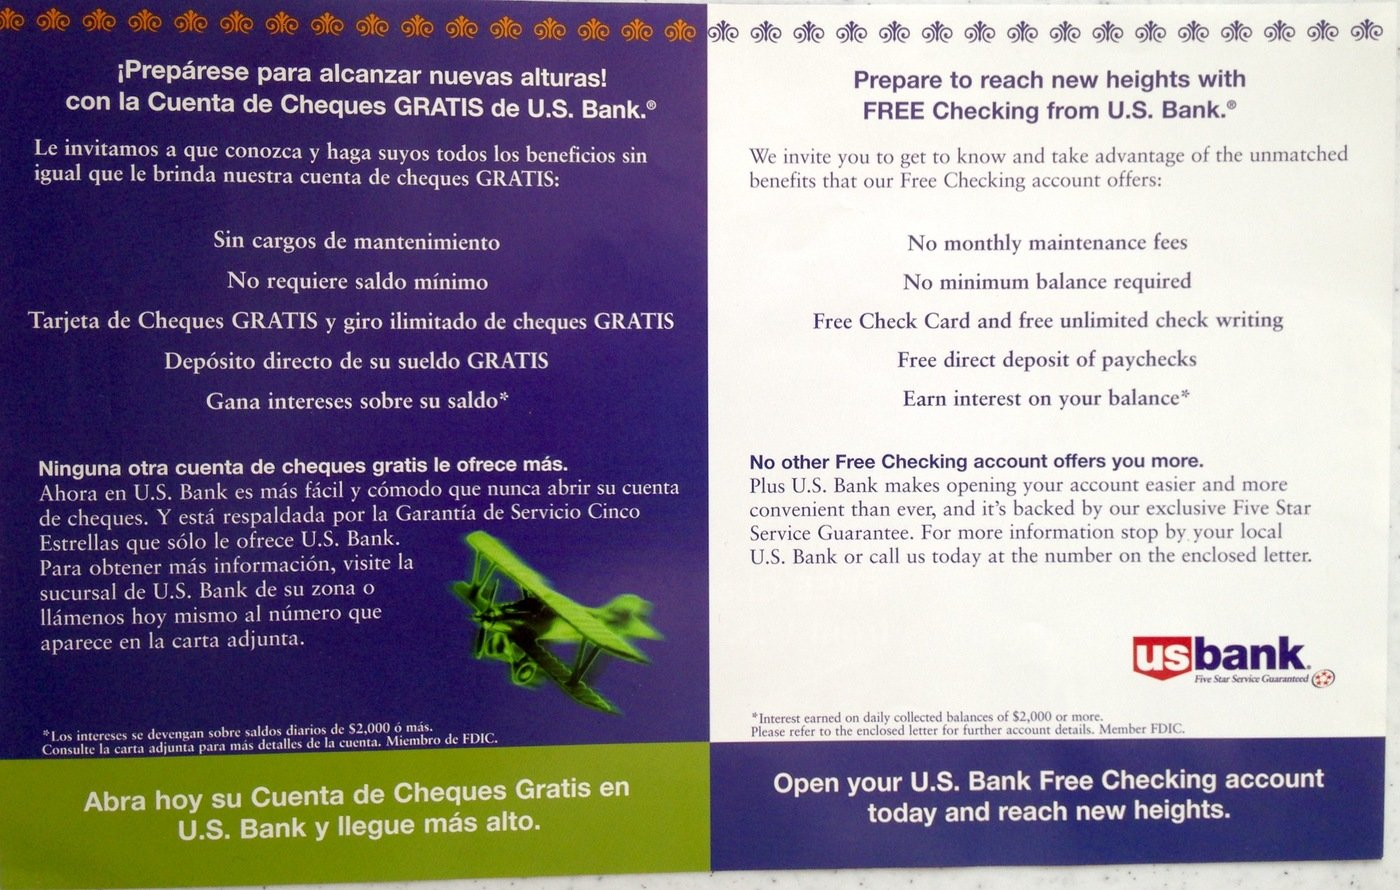 US Bank Award Winning Direct Mail By Gabriela Mangieri Harper At